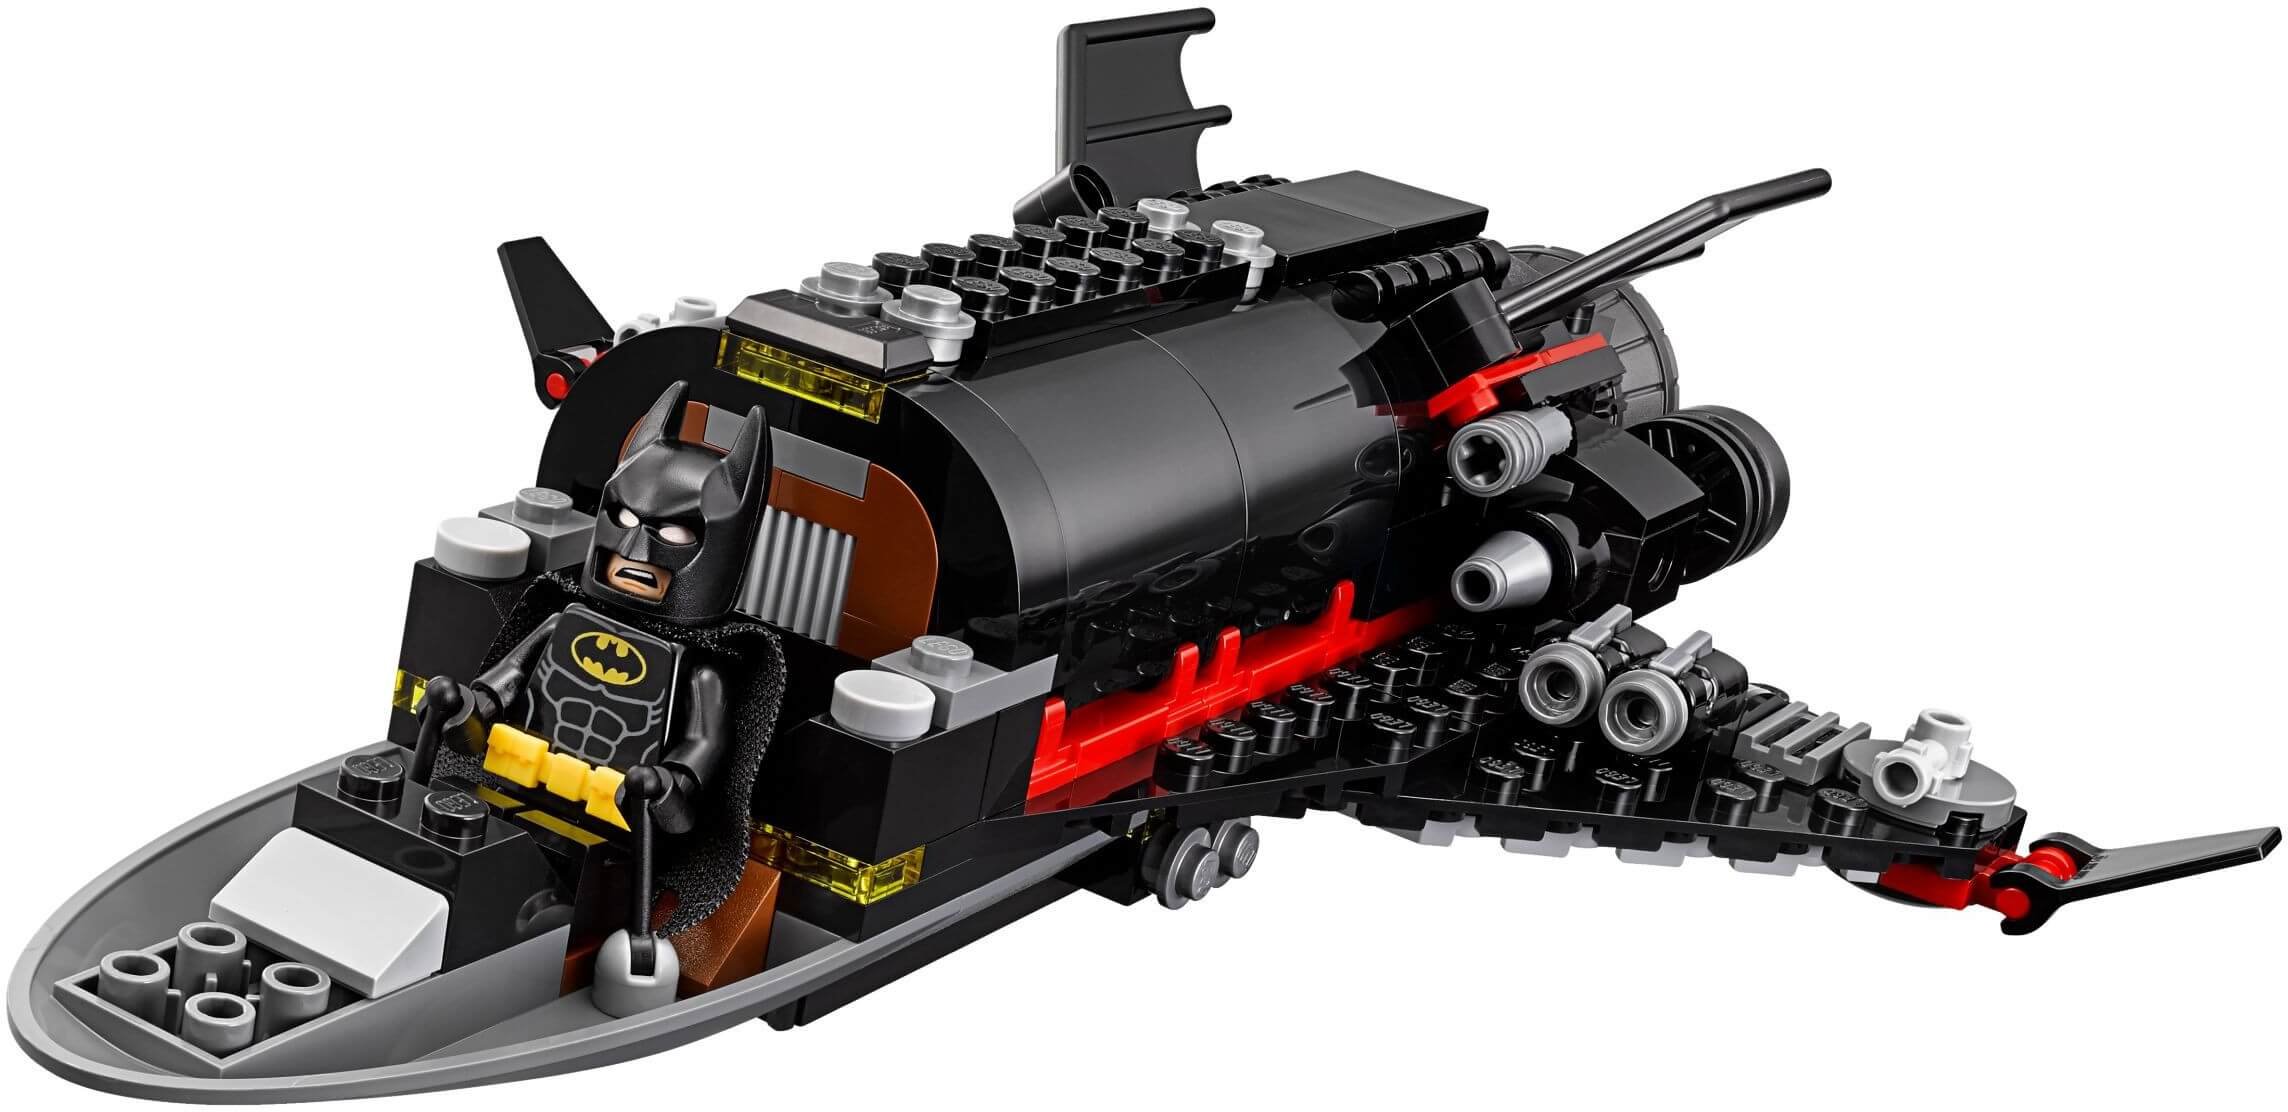 Mua đồ chơi LEGO 70923 - LEGO The Batman Movie 70923 - Phi Thuyền Batman (LEGO The Batman Movie 70923 The Bat-Space Shuttle)